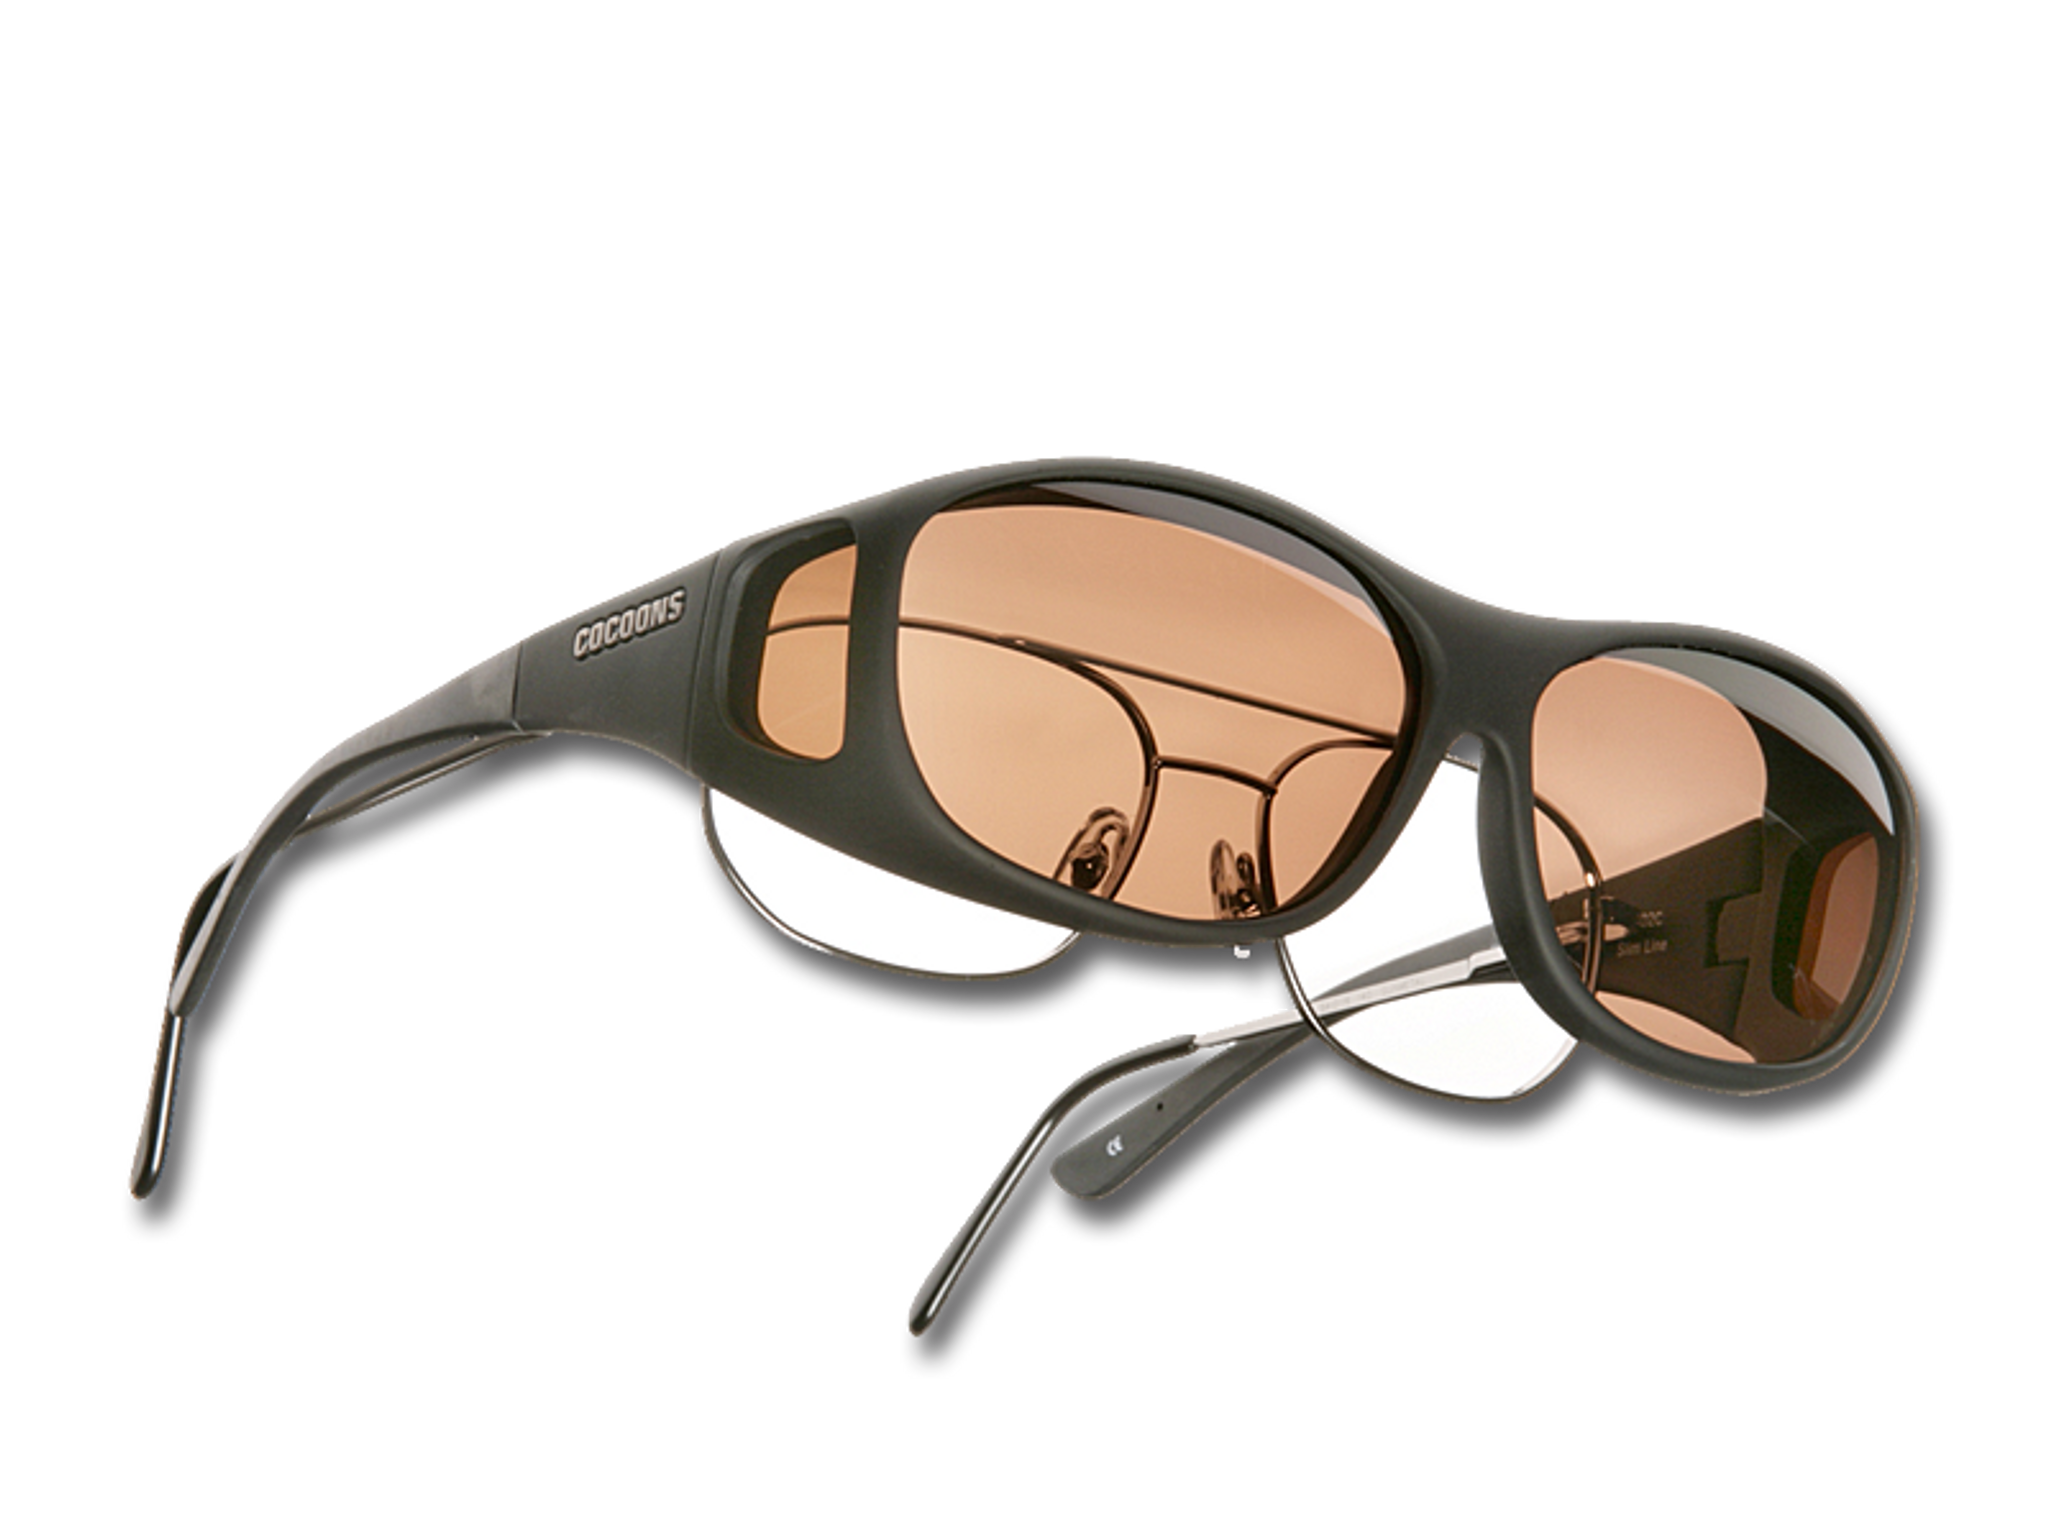 eb967e872d1 Cocoons OveRx Polarized Sunglasses at The Fly Shop